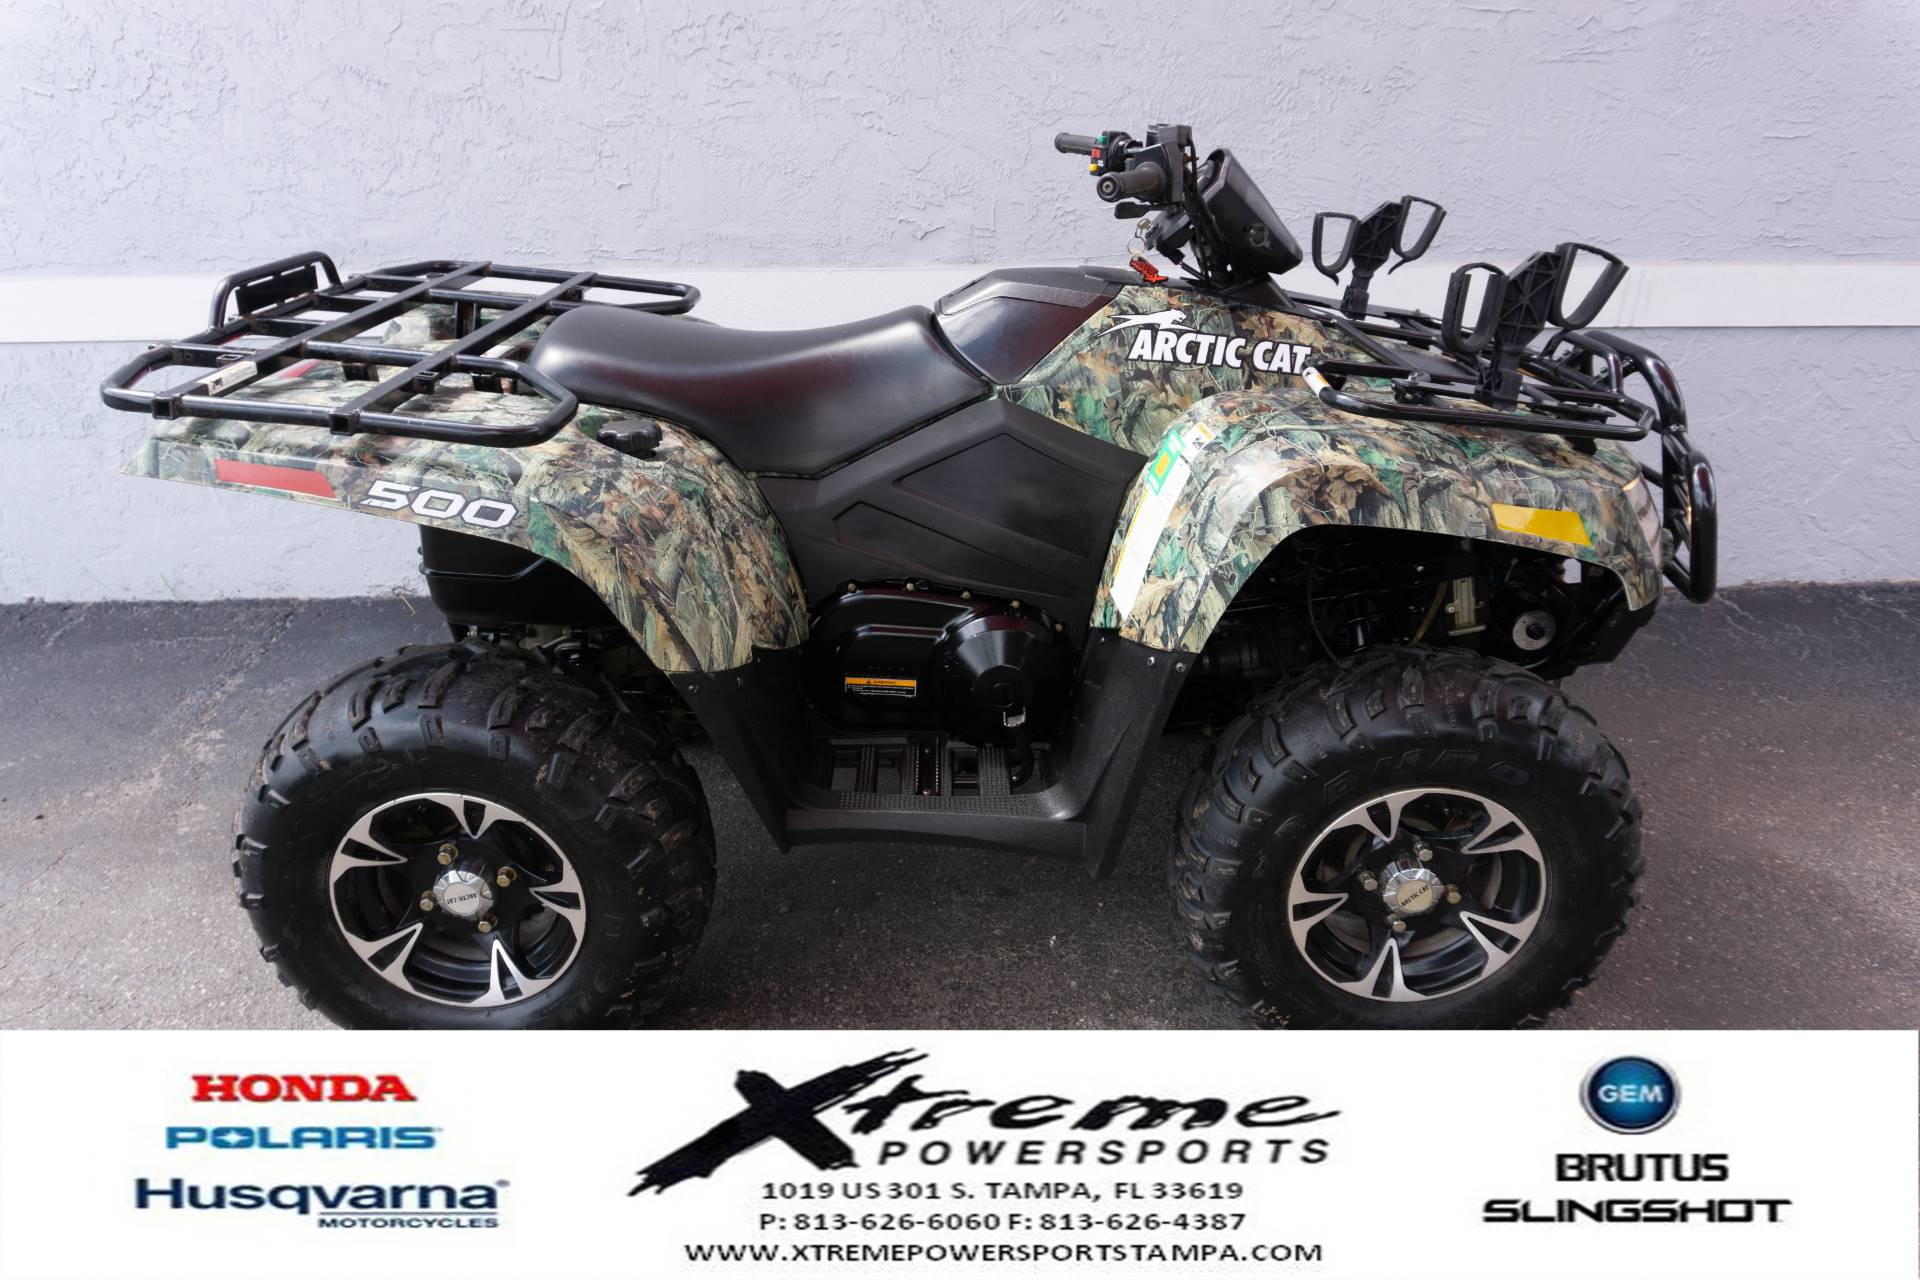 2013 ARTIC CAT 500 XT 4X4 in Tampa, Florida - Photo 6